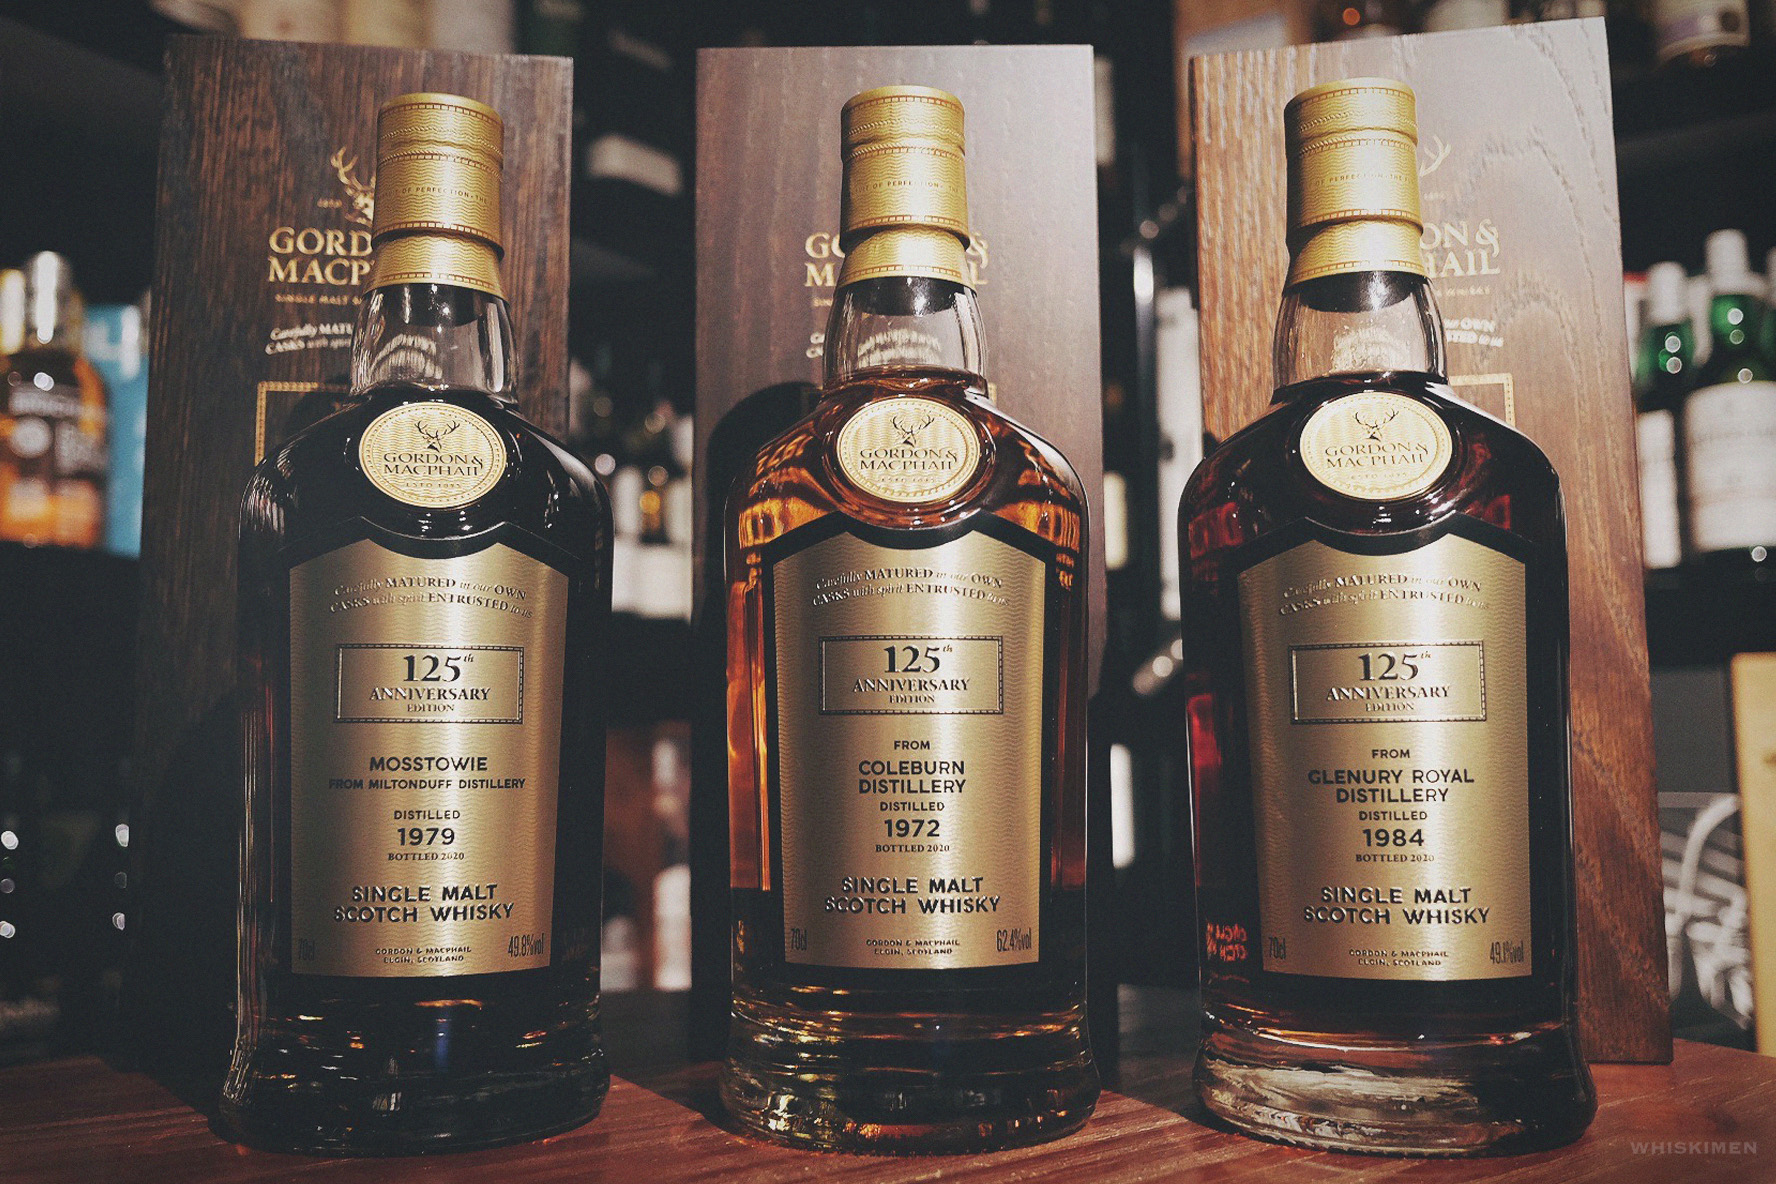 Gordon & MacPhail The Last Cask Series (125th Anniversary Edition)